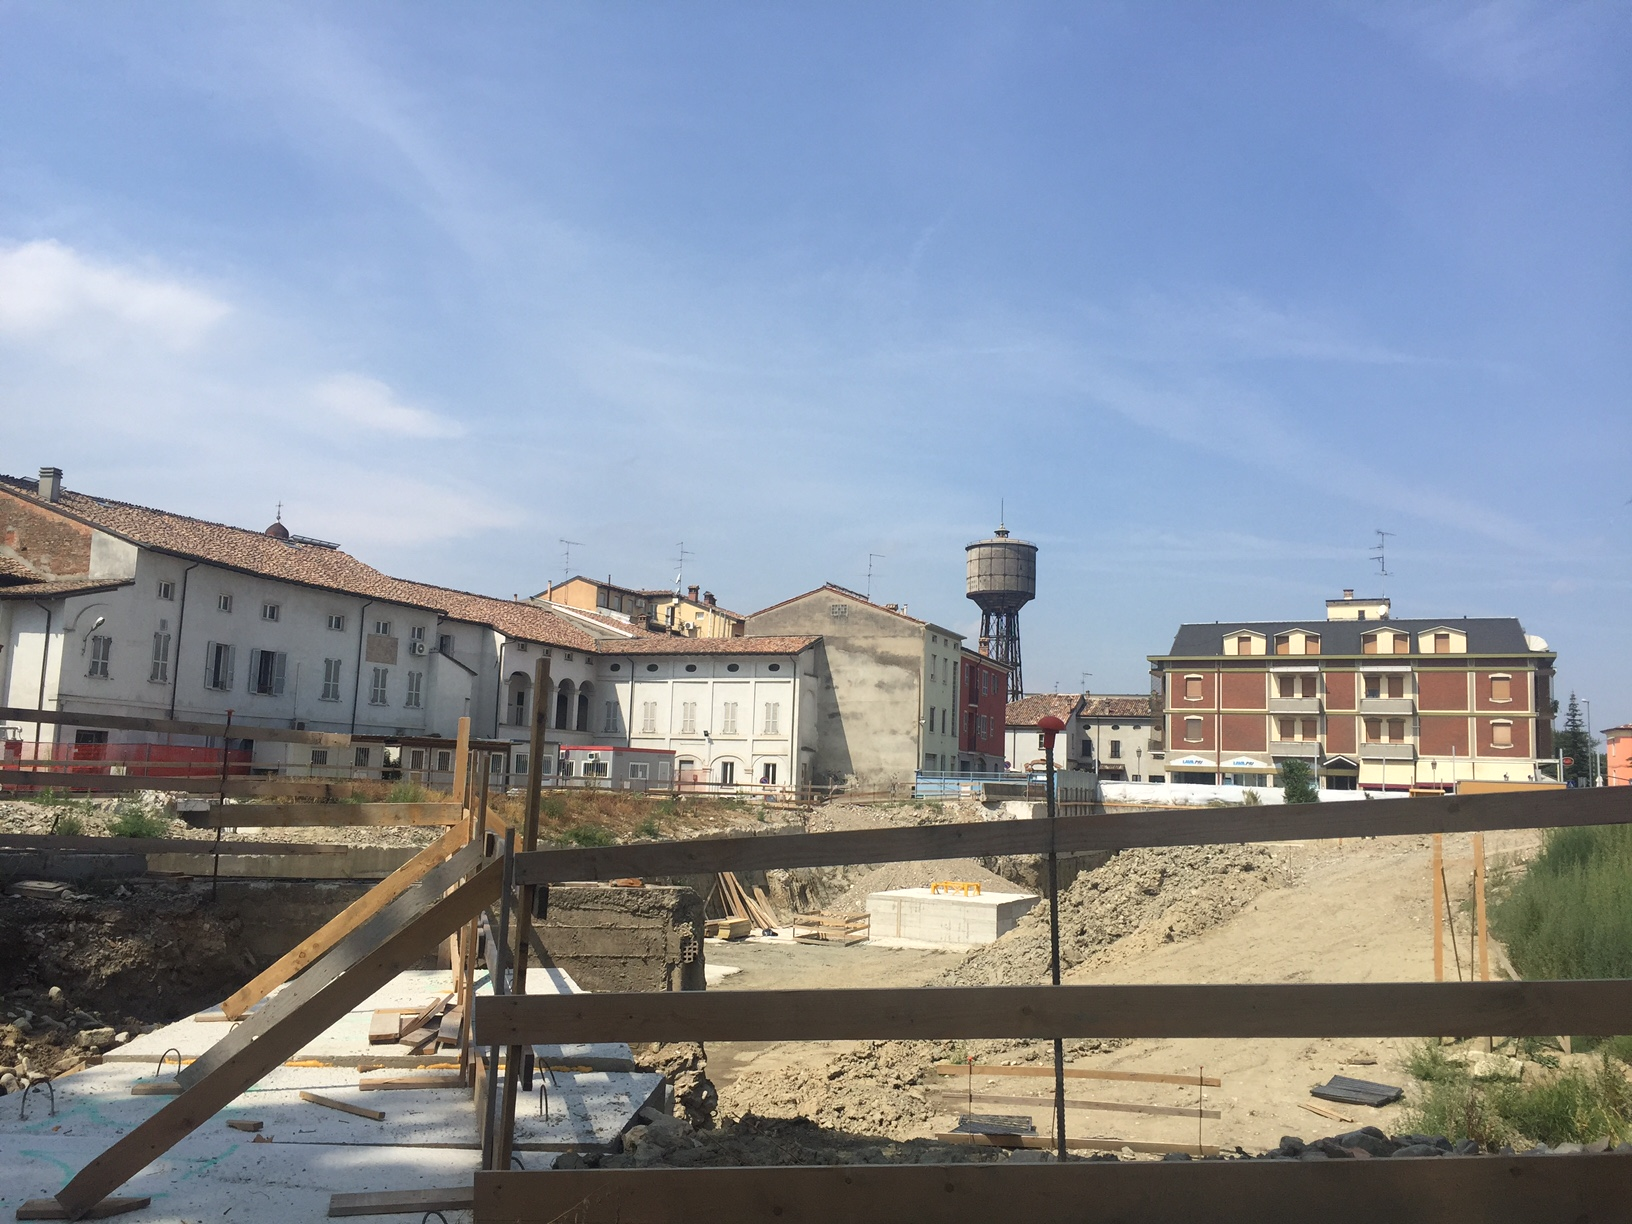 ospedale cantiere 18 agosto